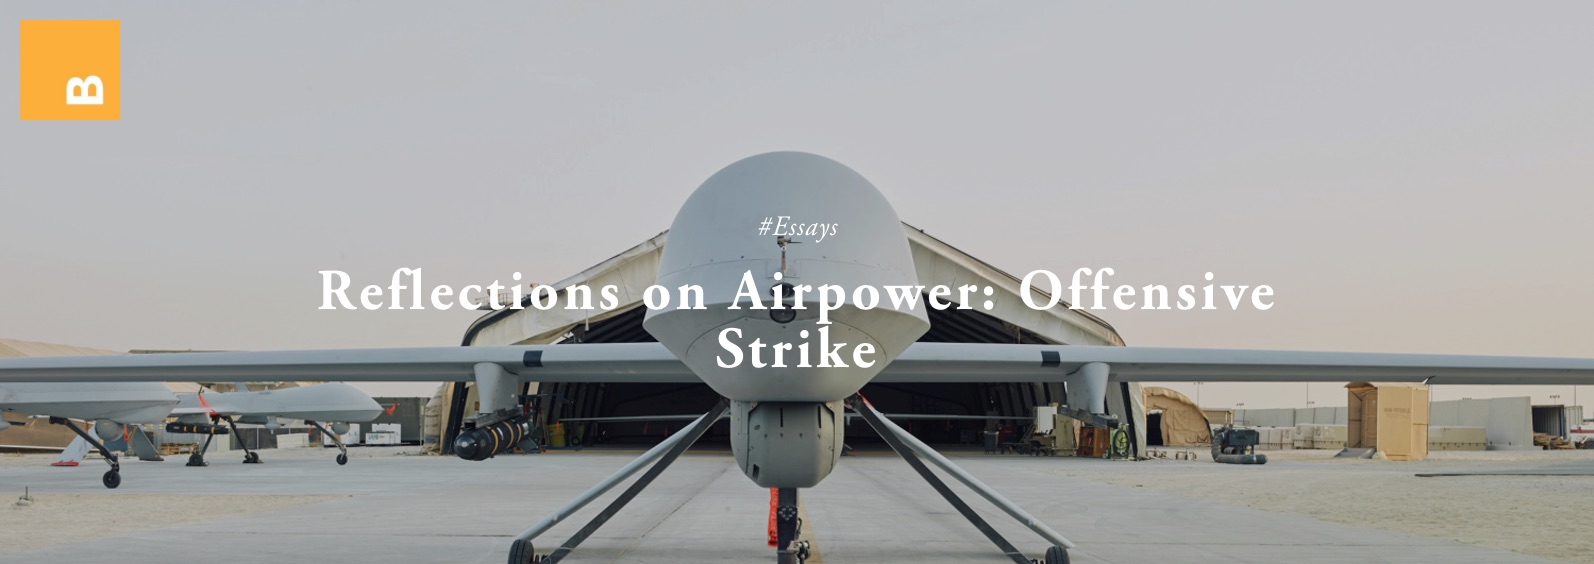 Reflections on Airpower Part II.jpg